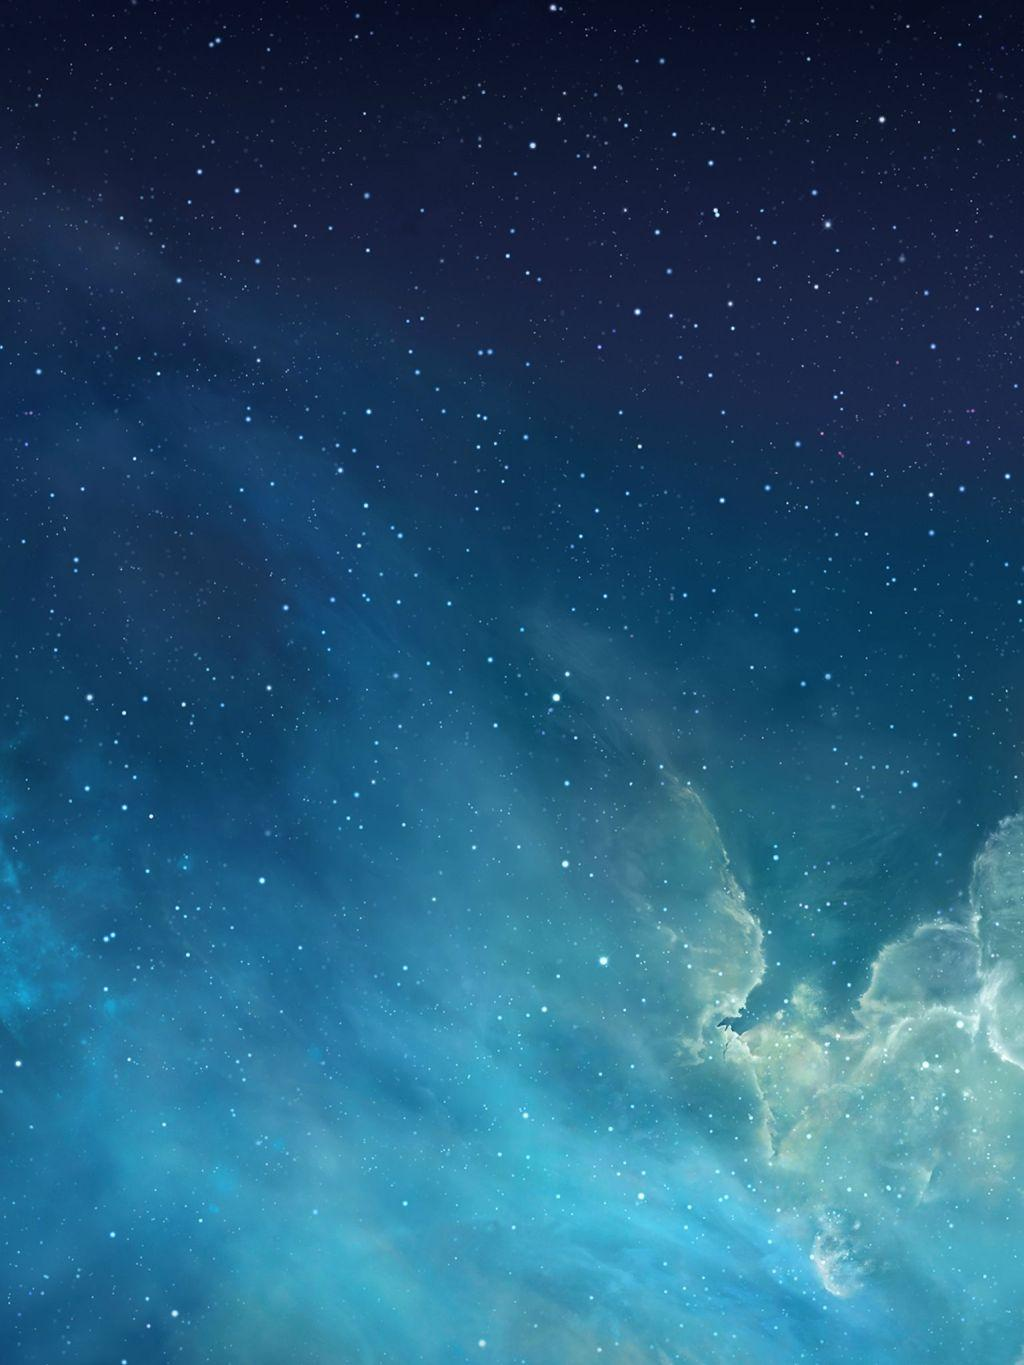 Download iOS 7 starry wallpapers [1536x2048] Iwallpapers Wallpapers